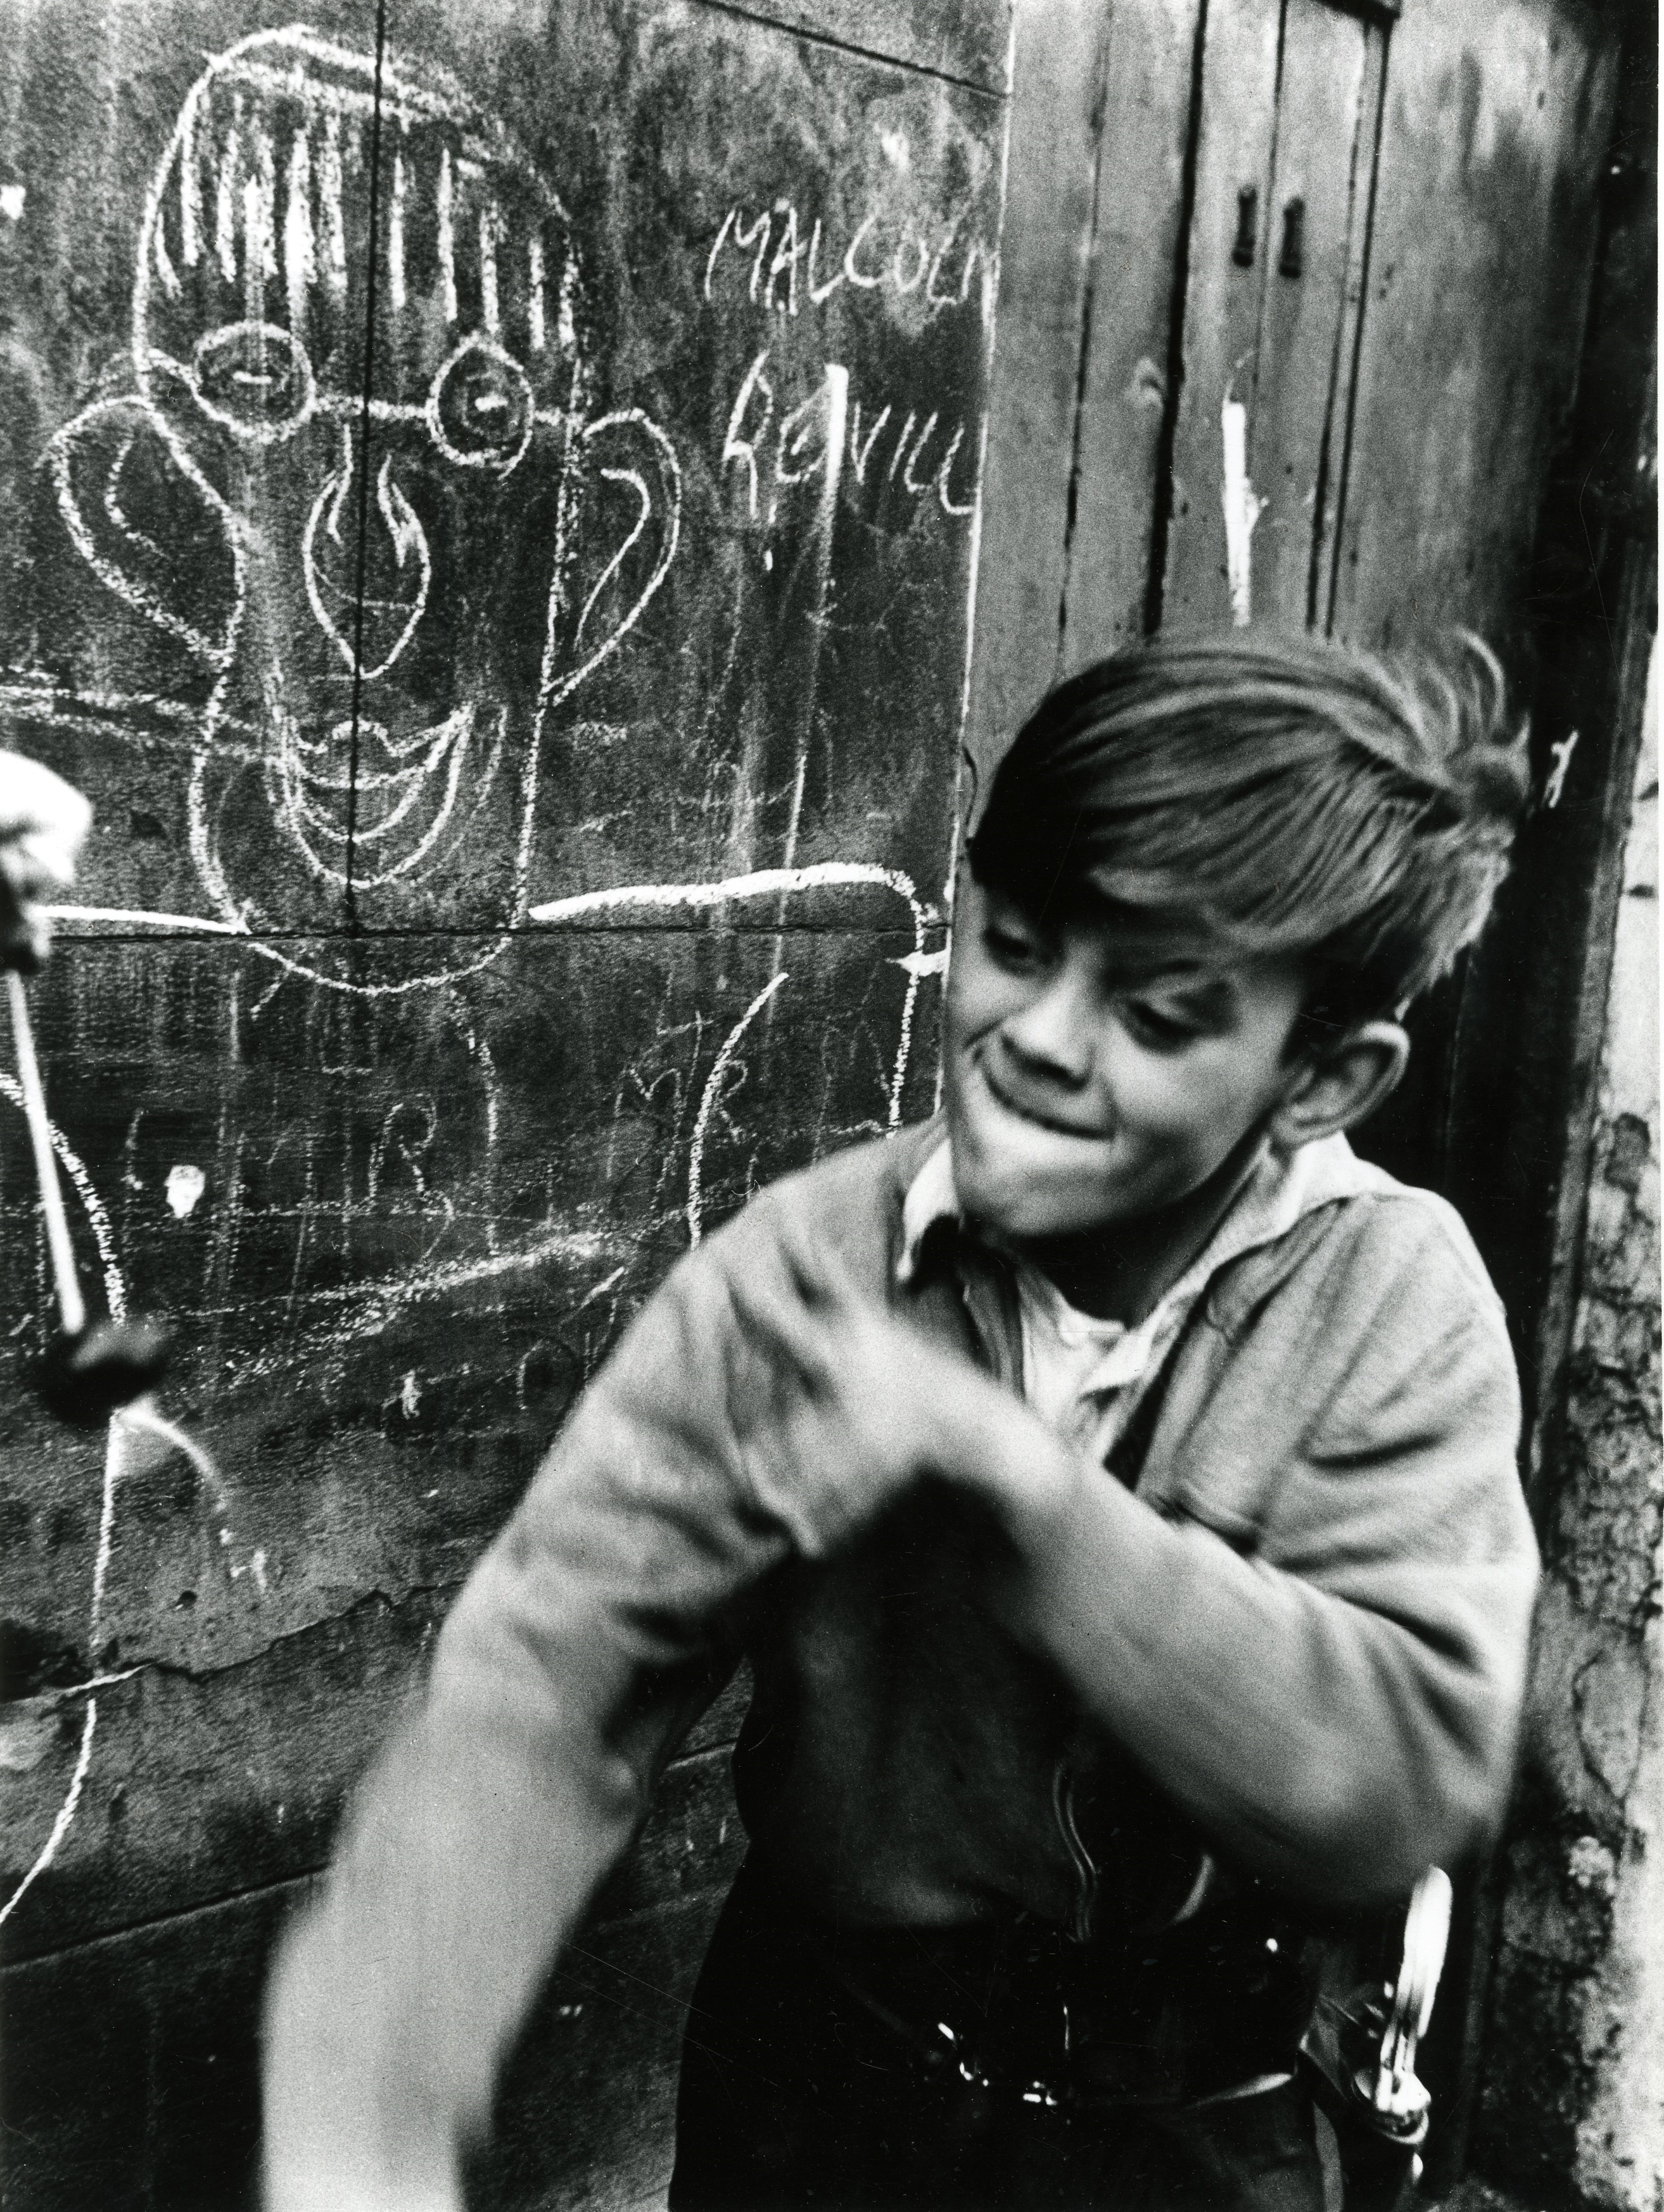 01_PressImage l Roger Mayne, Boy playing conkers, 1957 copy